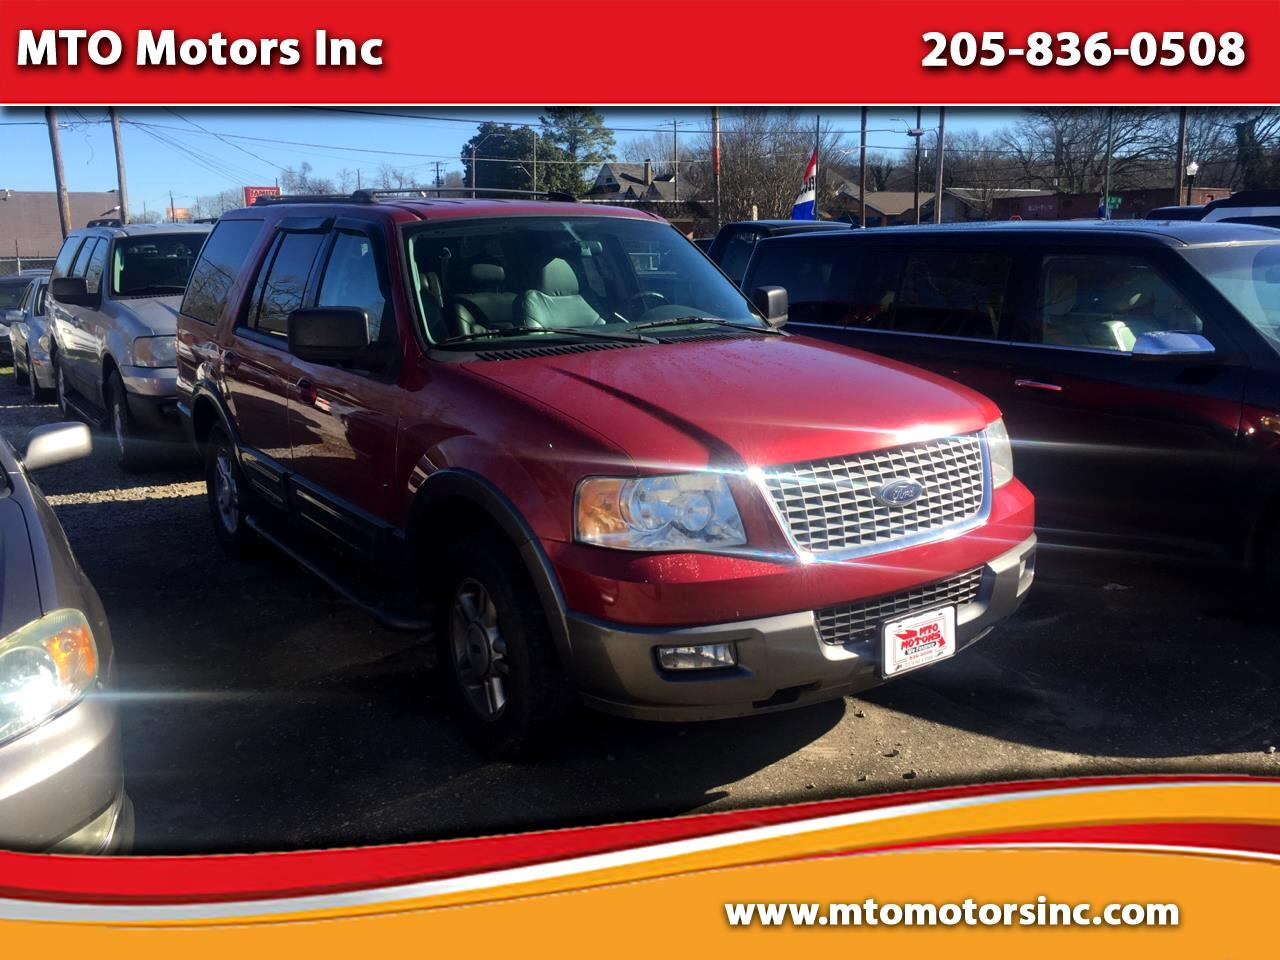 2004 Ford Expedition XLT 5.4L 2WD